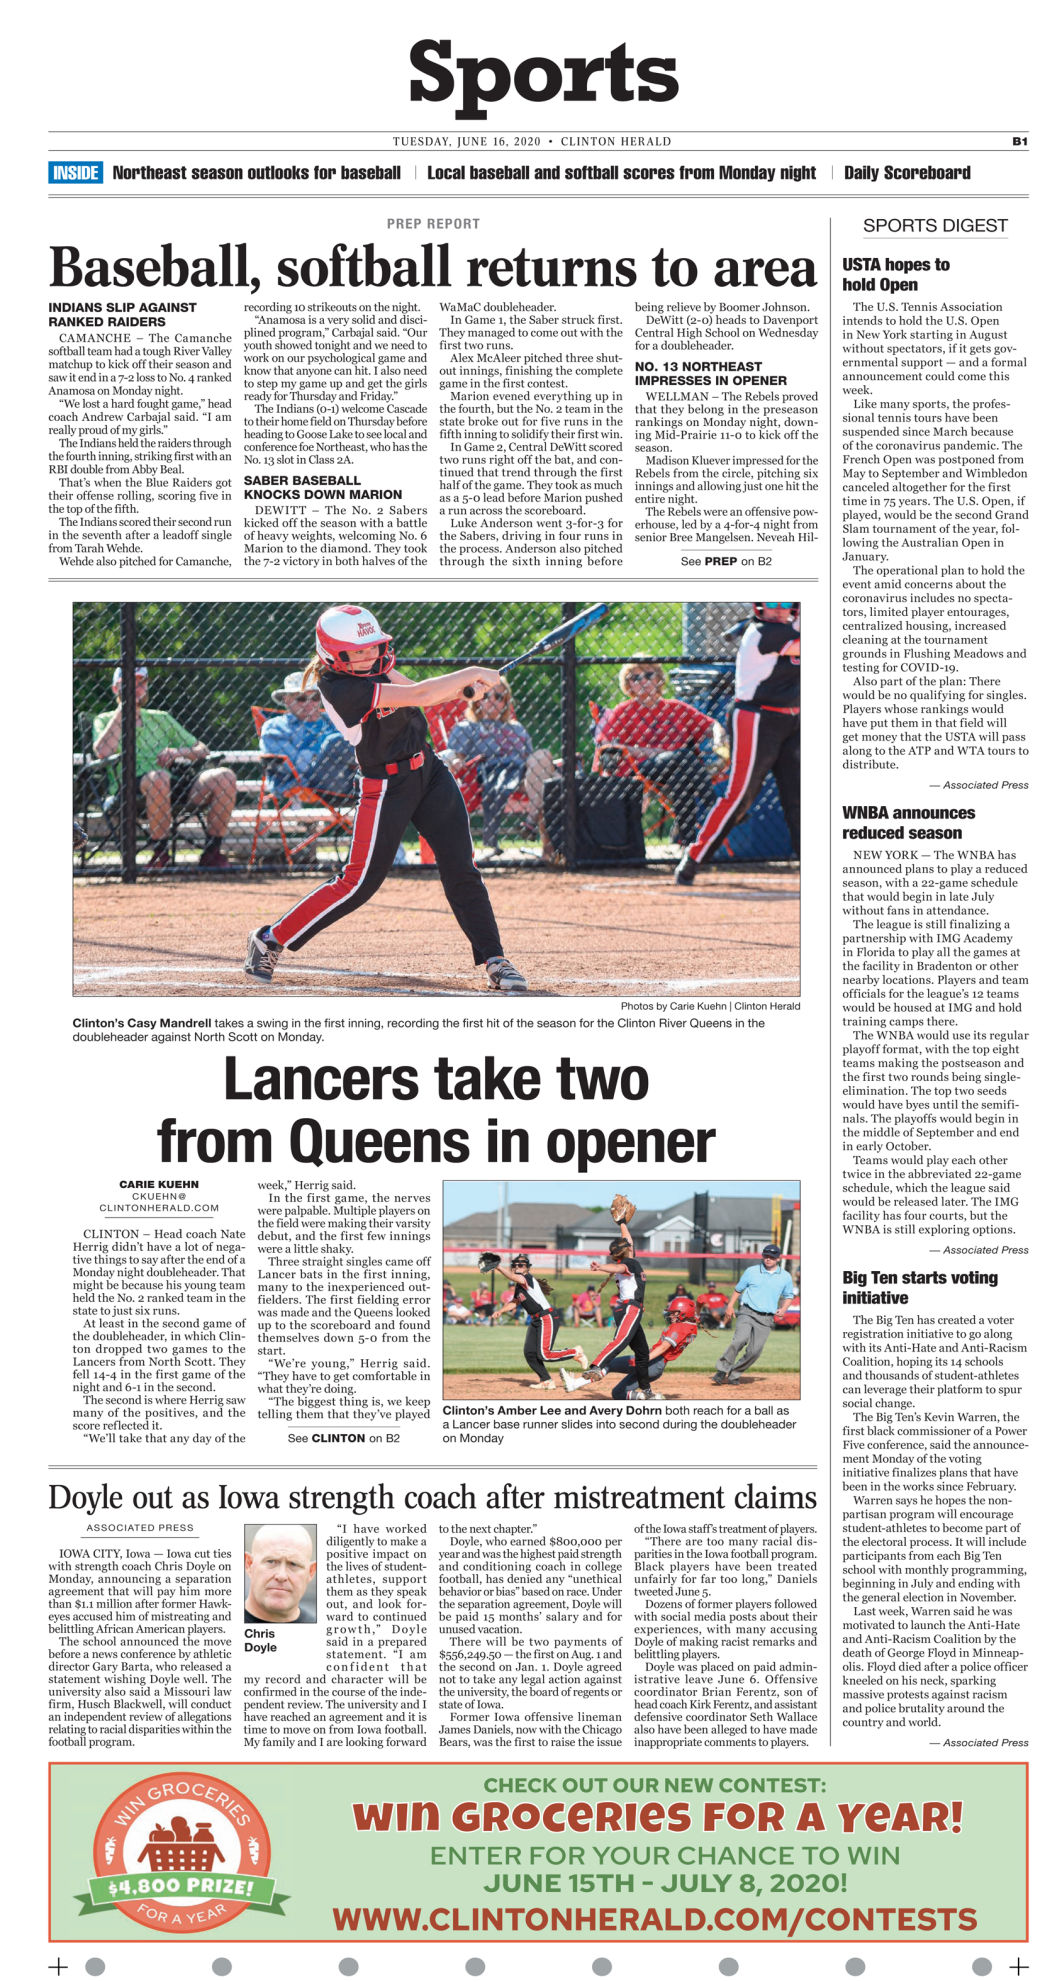 June 16, 2020 Front Sports page